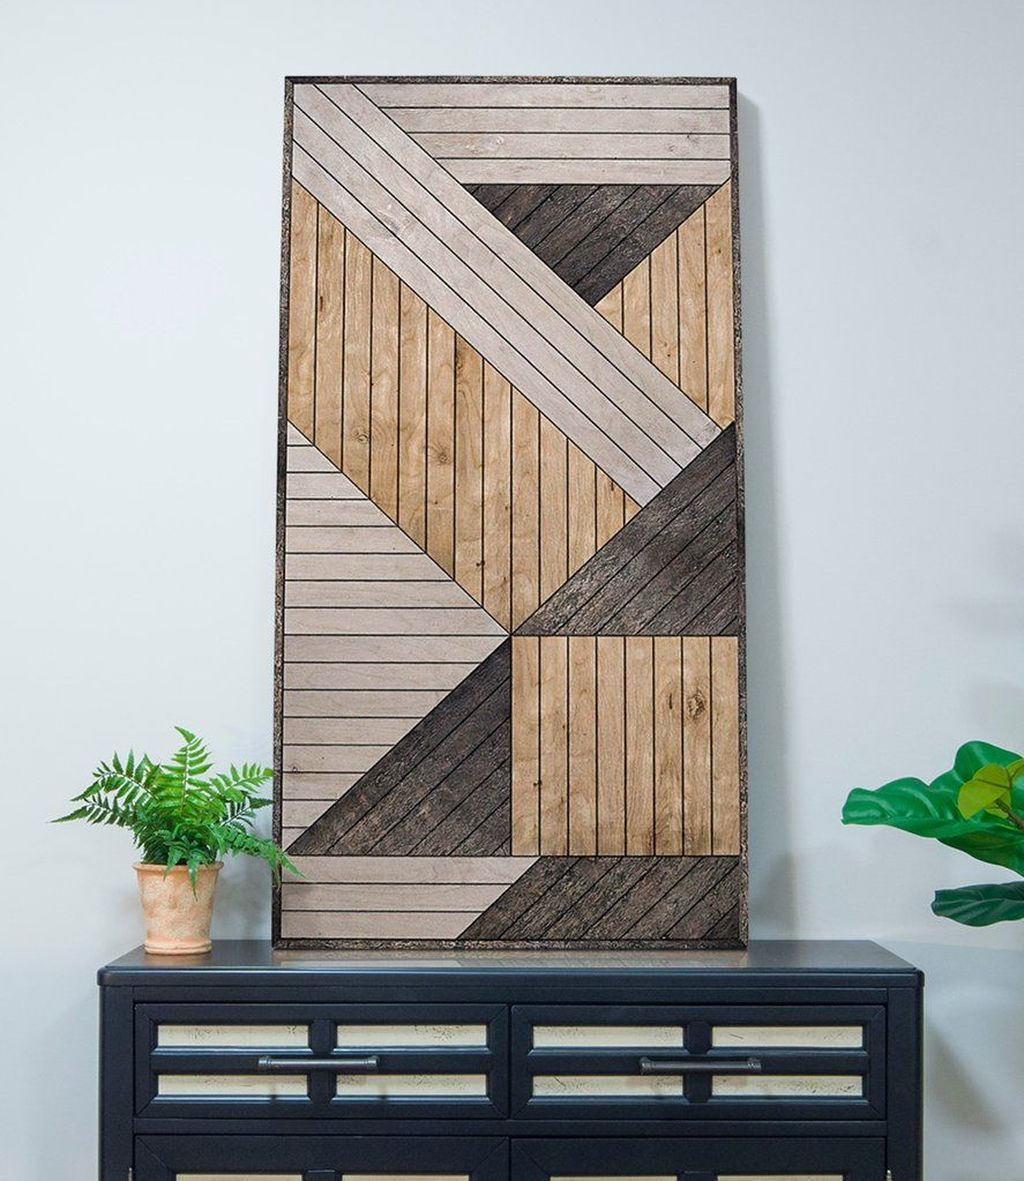 39 Beautiful Wood Wall Art Design Ideas For Your Home Decor In